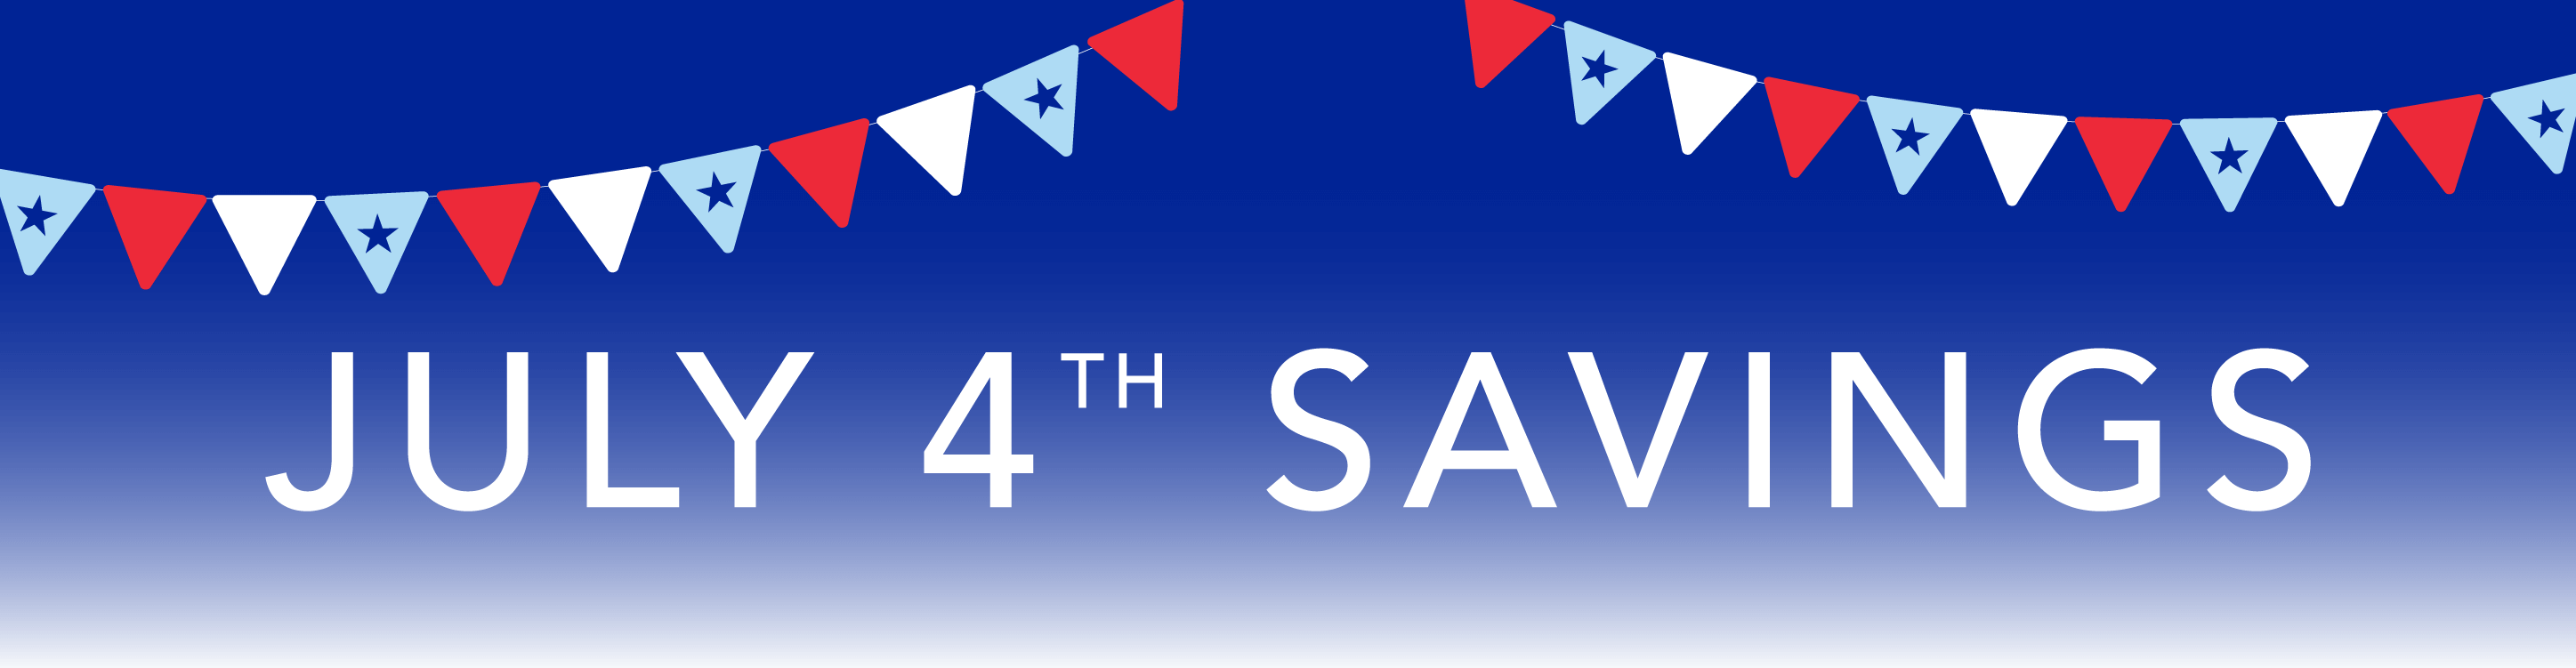 Bosch July 4th Savings Event